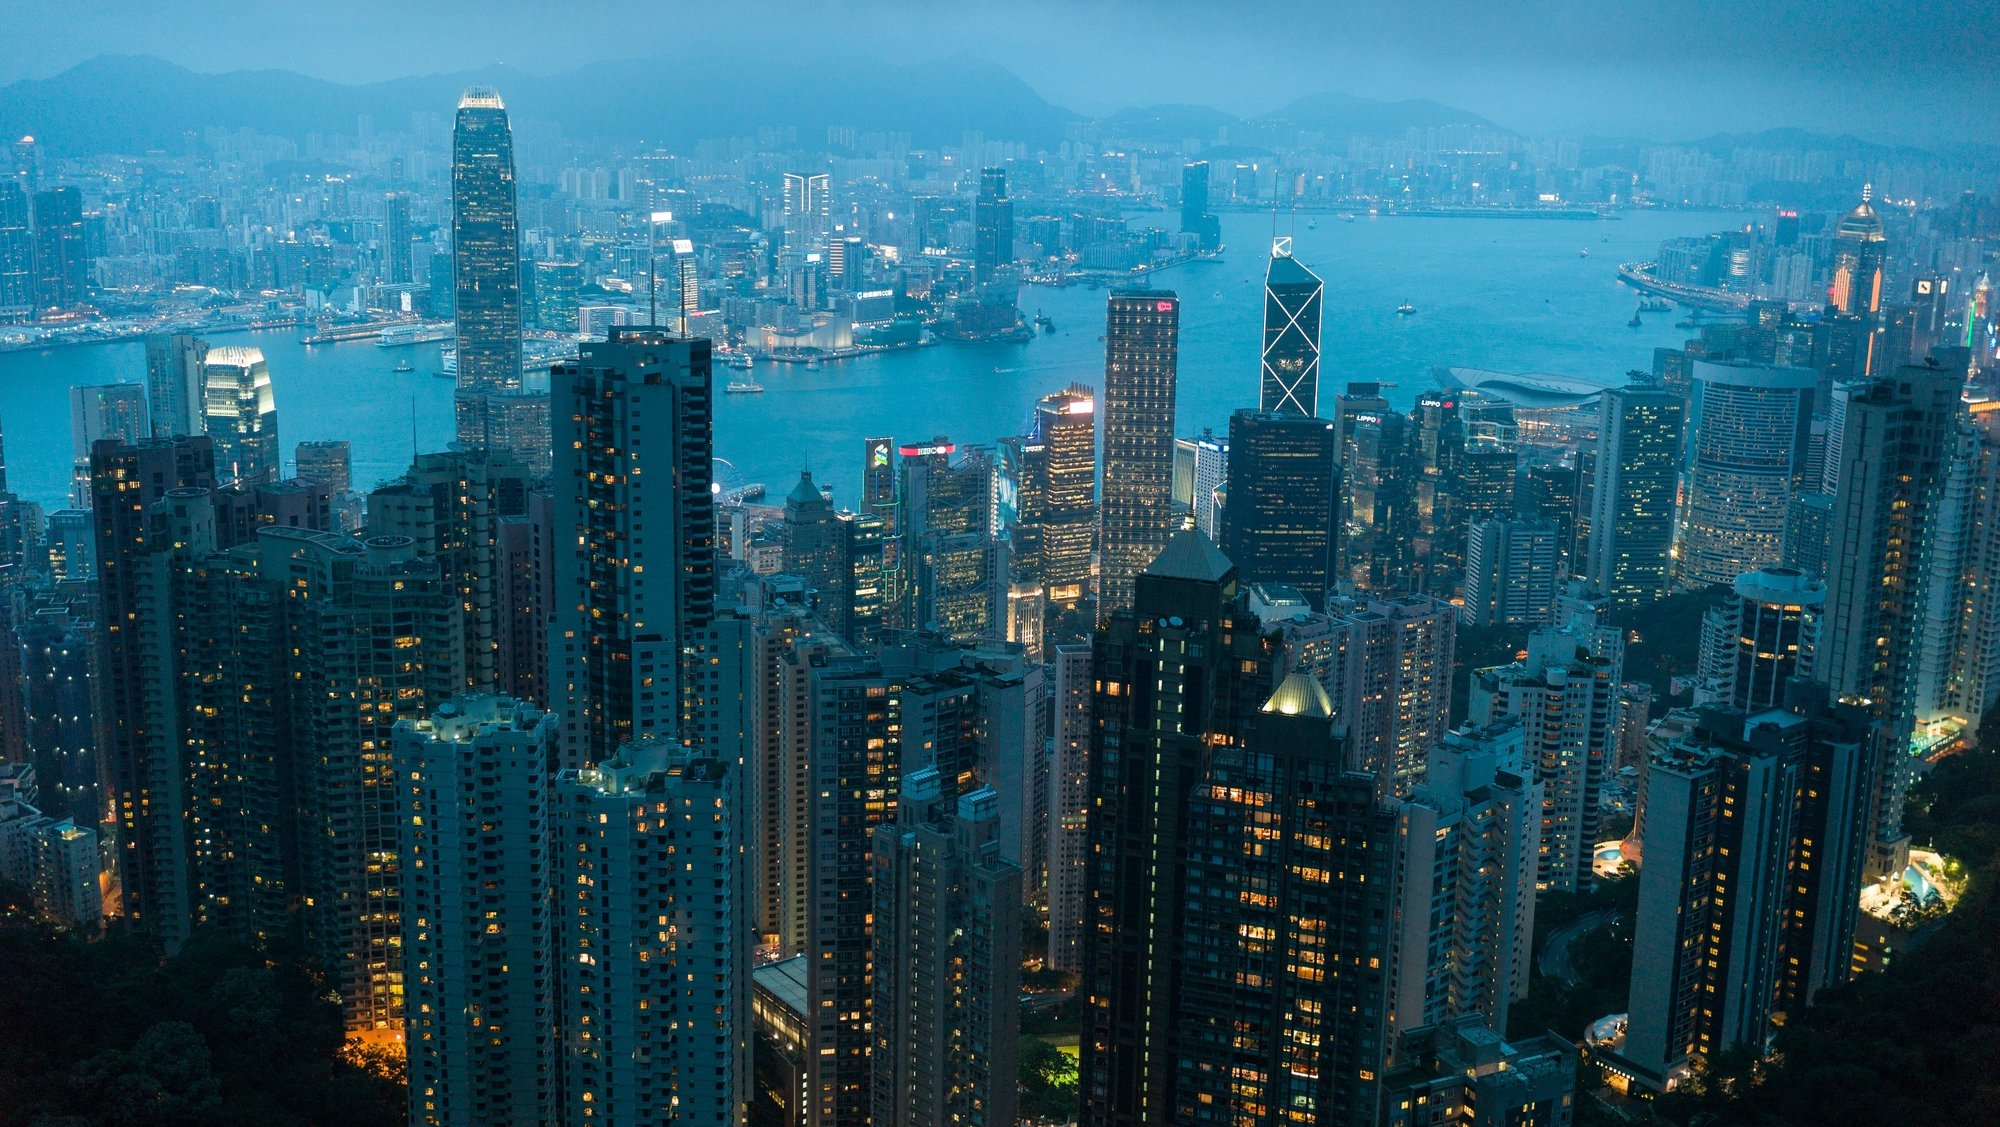 epa06029550 A view from commercial and residential buildings on both sides of the Victoria Harbour in Hong Kong, China, 15 June 2017. Hong Kong will celebrate the 20th anniversary of its handover from Britain to China on 01 July.  EPA/JEROME FAVRE